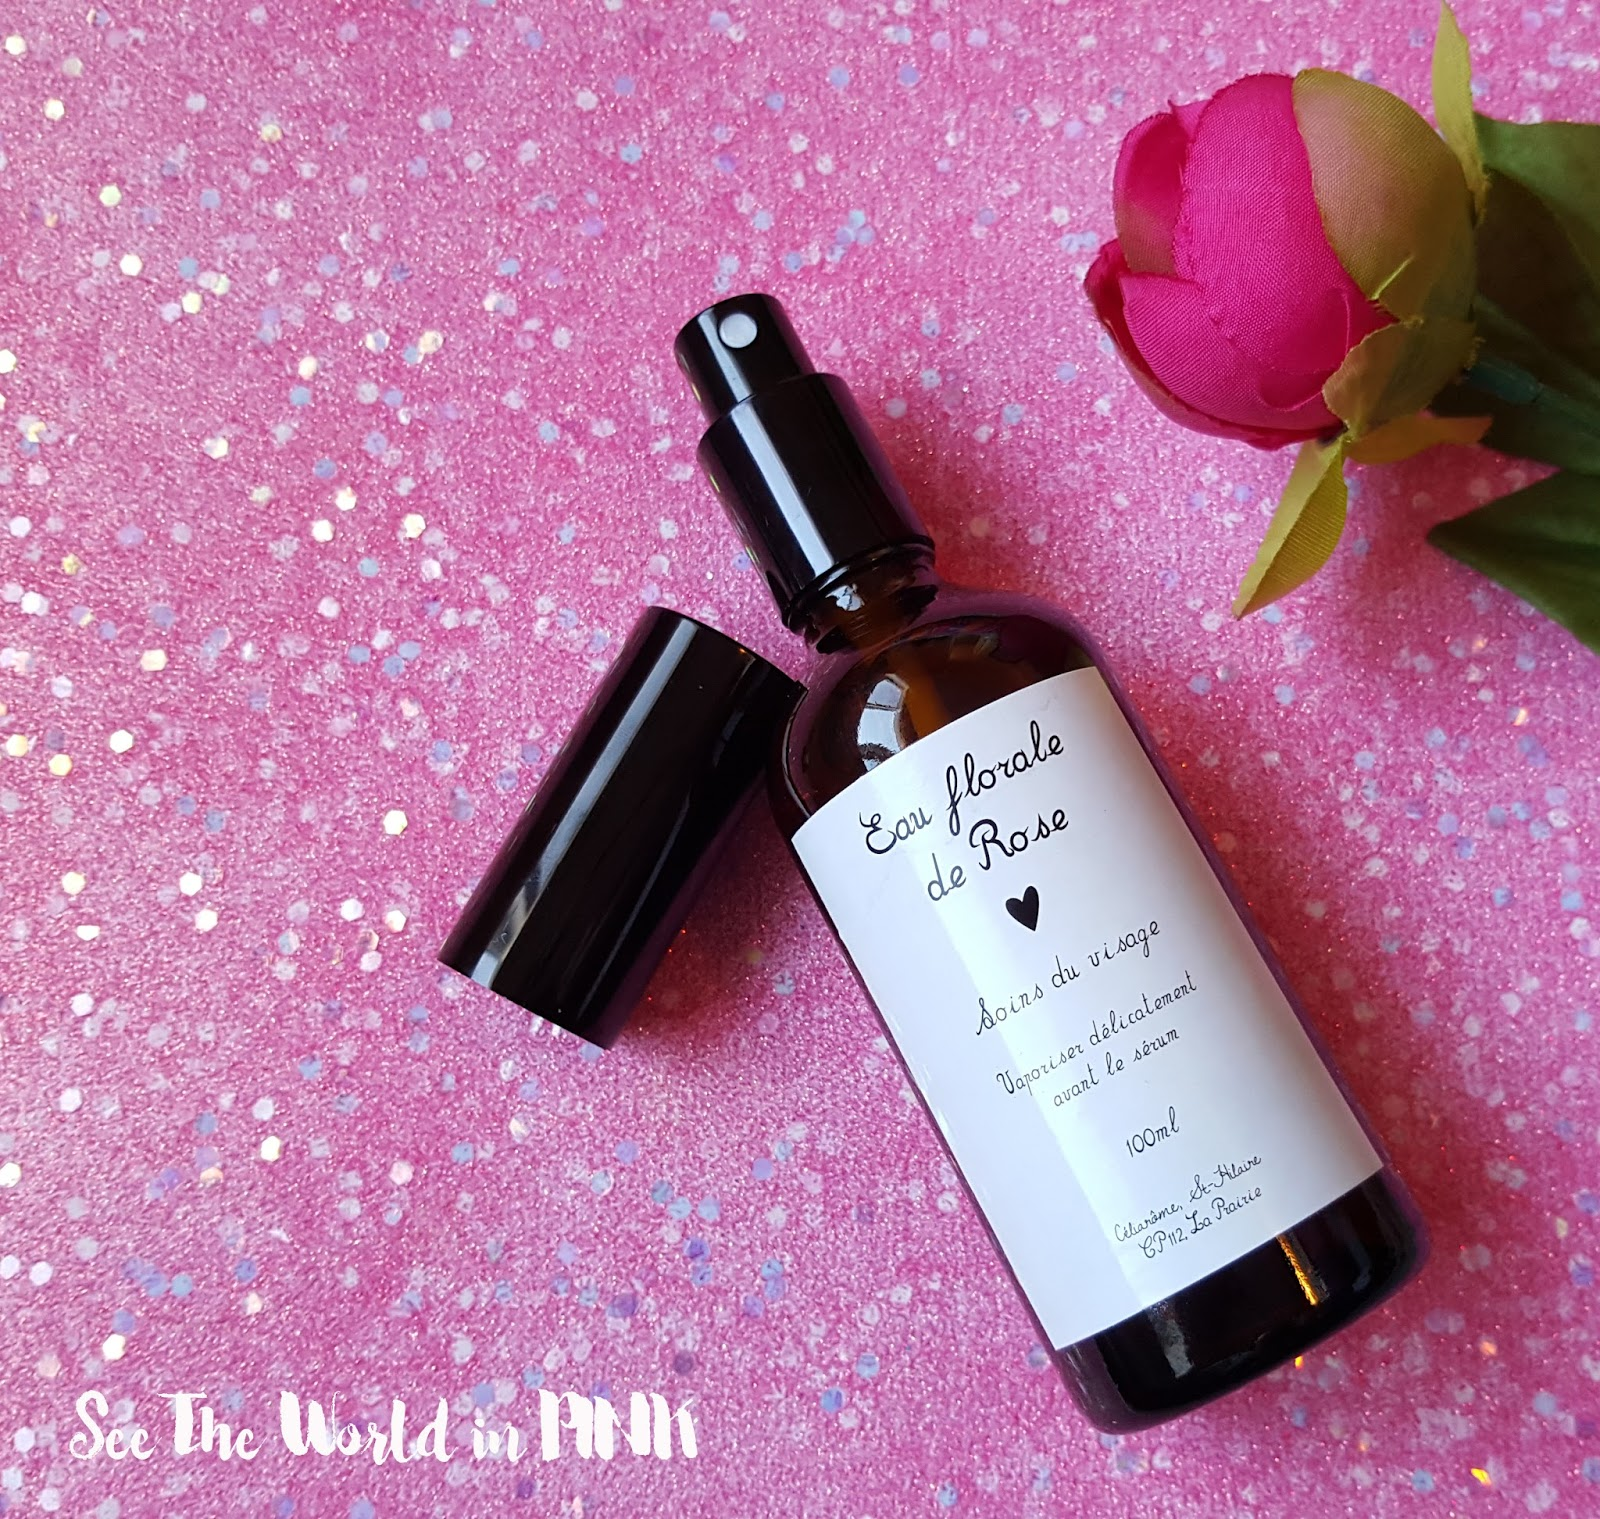 Les Soins de Jacynthe Beauty Essentials Trio Review